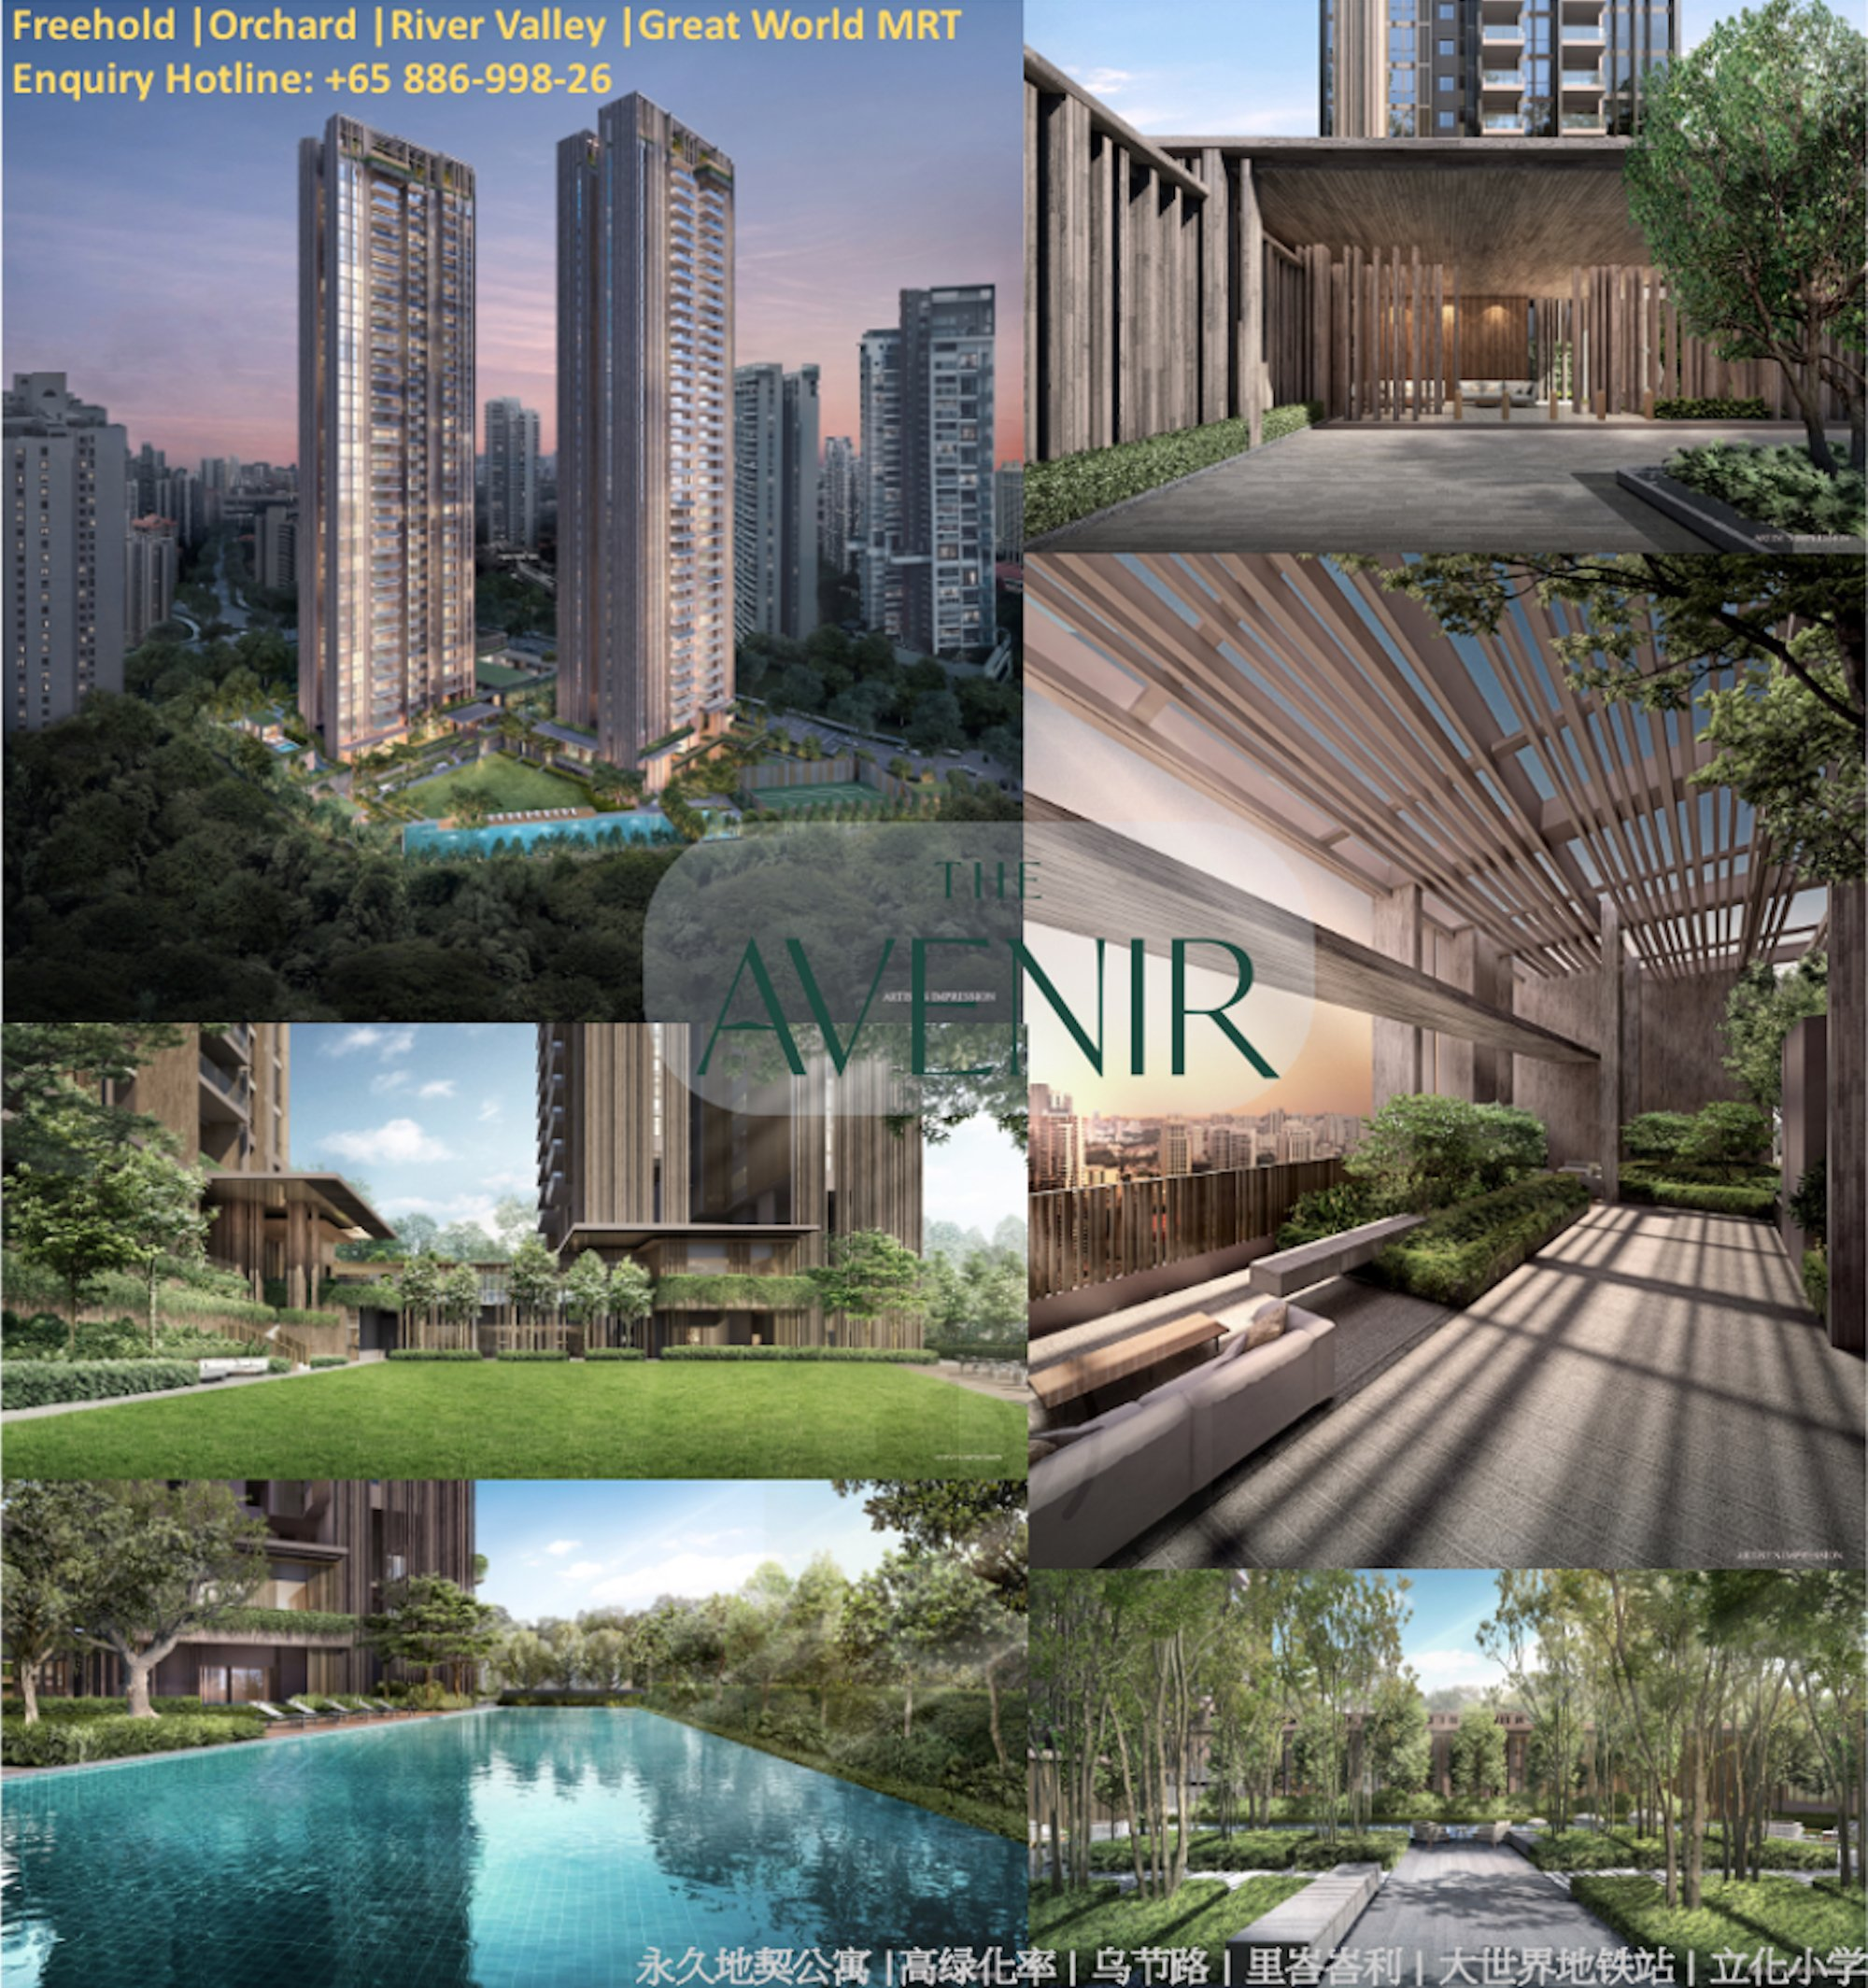 the avenir freehold condo in river valley overview